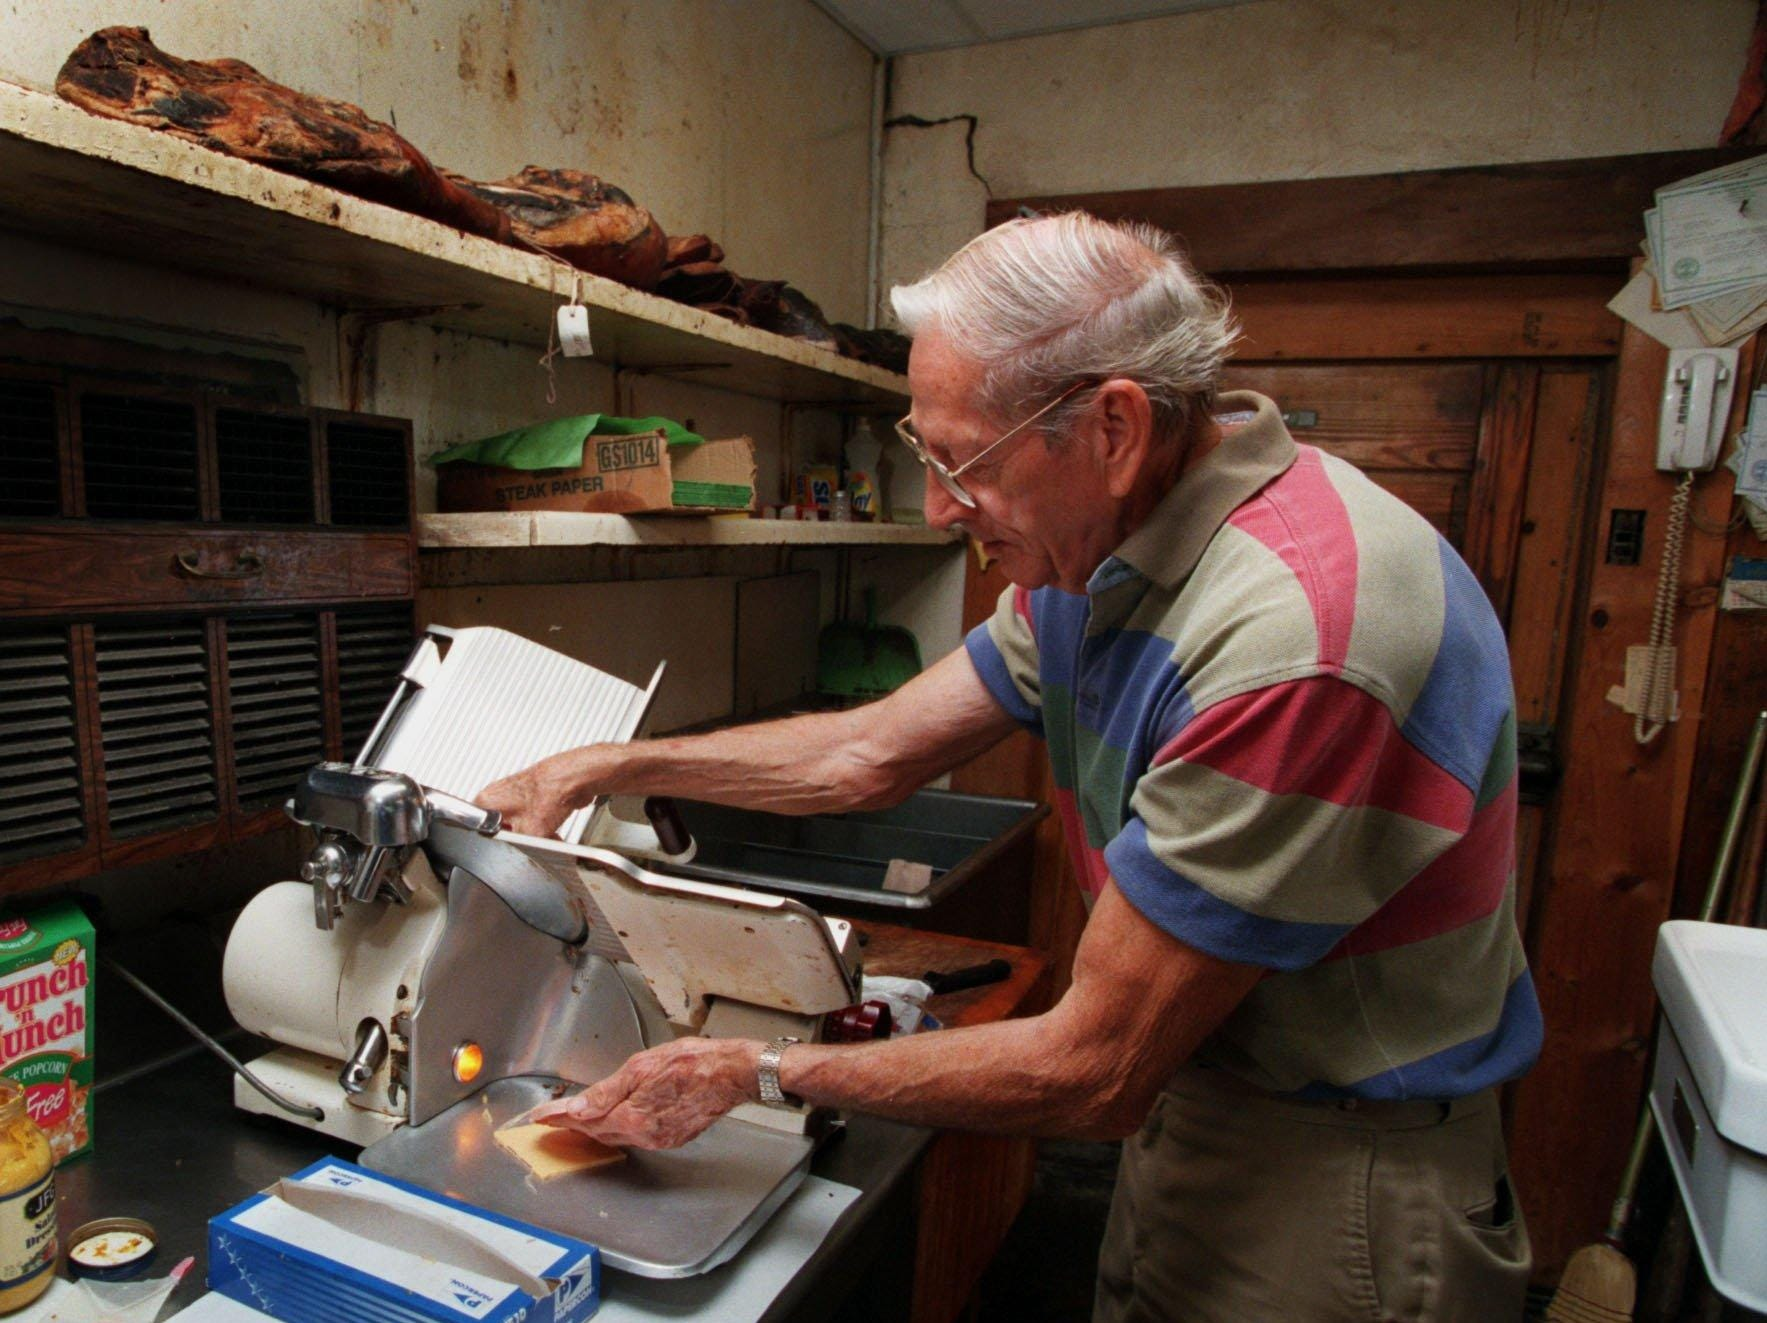 The late Waymen Terry , owner of Terry's Market in Gallatin cuts up thick slices of meat and cheese for sandwiches. Customers came from all over to buy the smoked and aged meats that Waymen and his son, Ronnie Terry sold in their small Gallatin market.